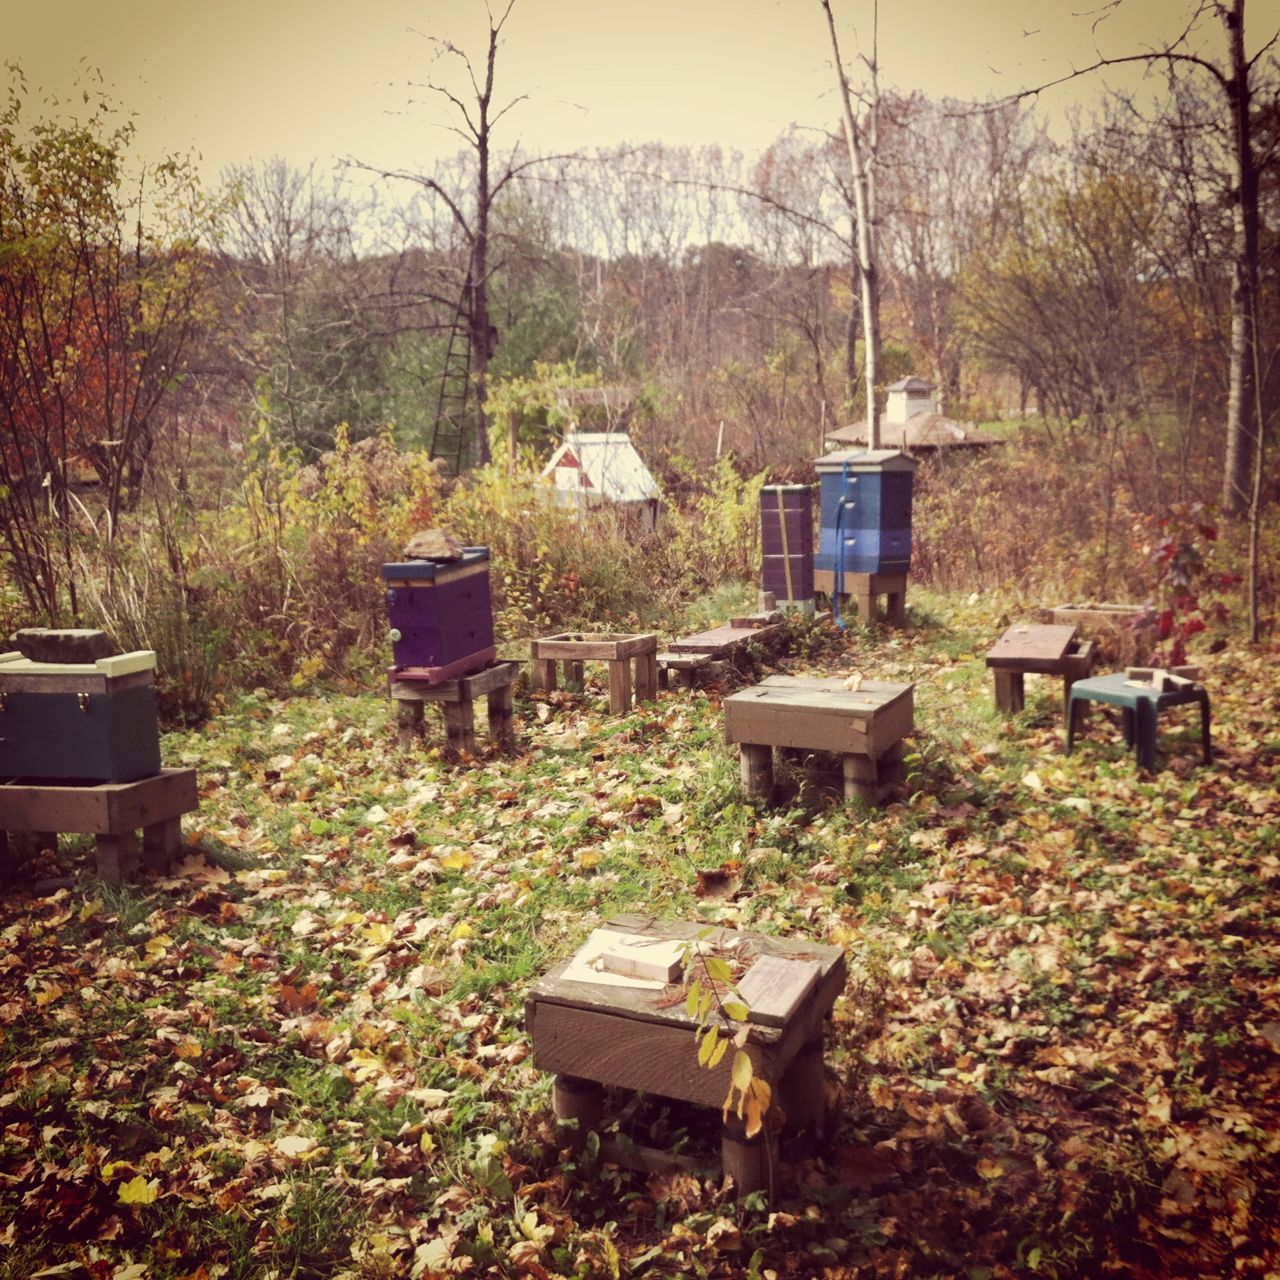 Overland Honey bee yard | bee charmer | Pinterest | Bees, Yards and ...